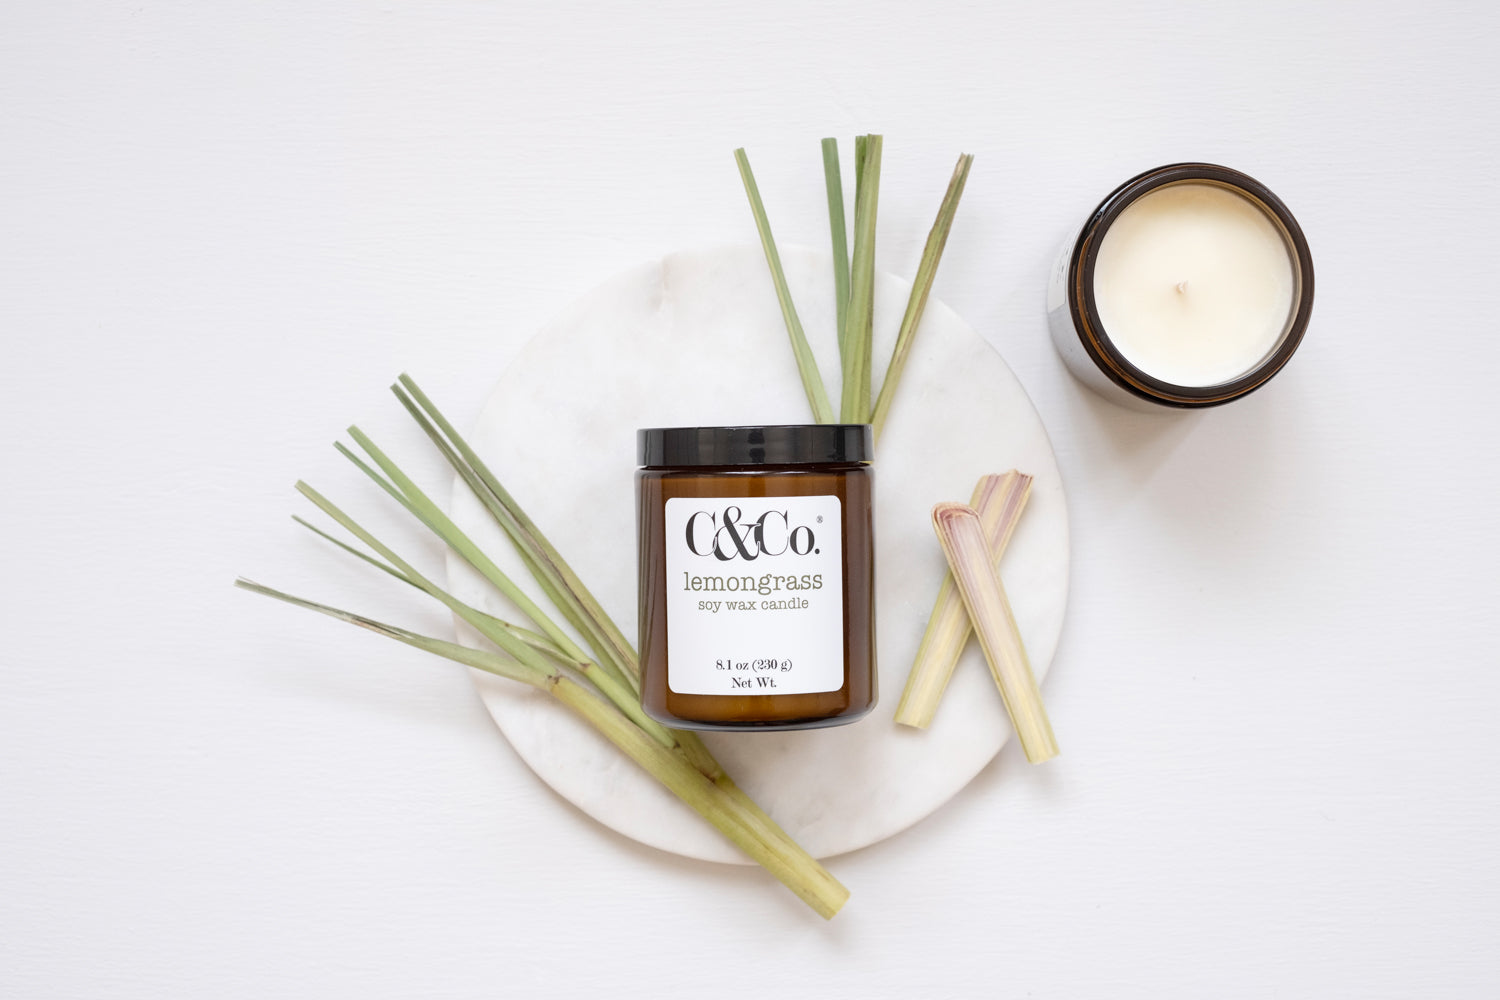 Lemongrass Soy Wax Candle - C & Co.®